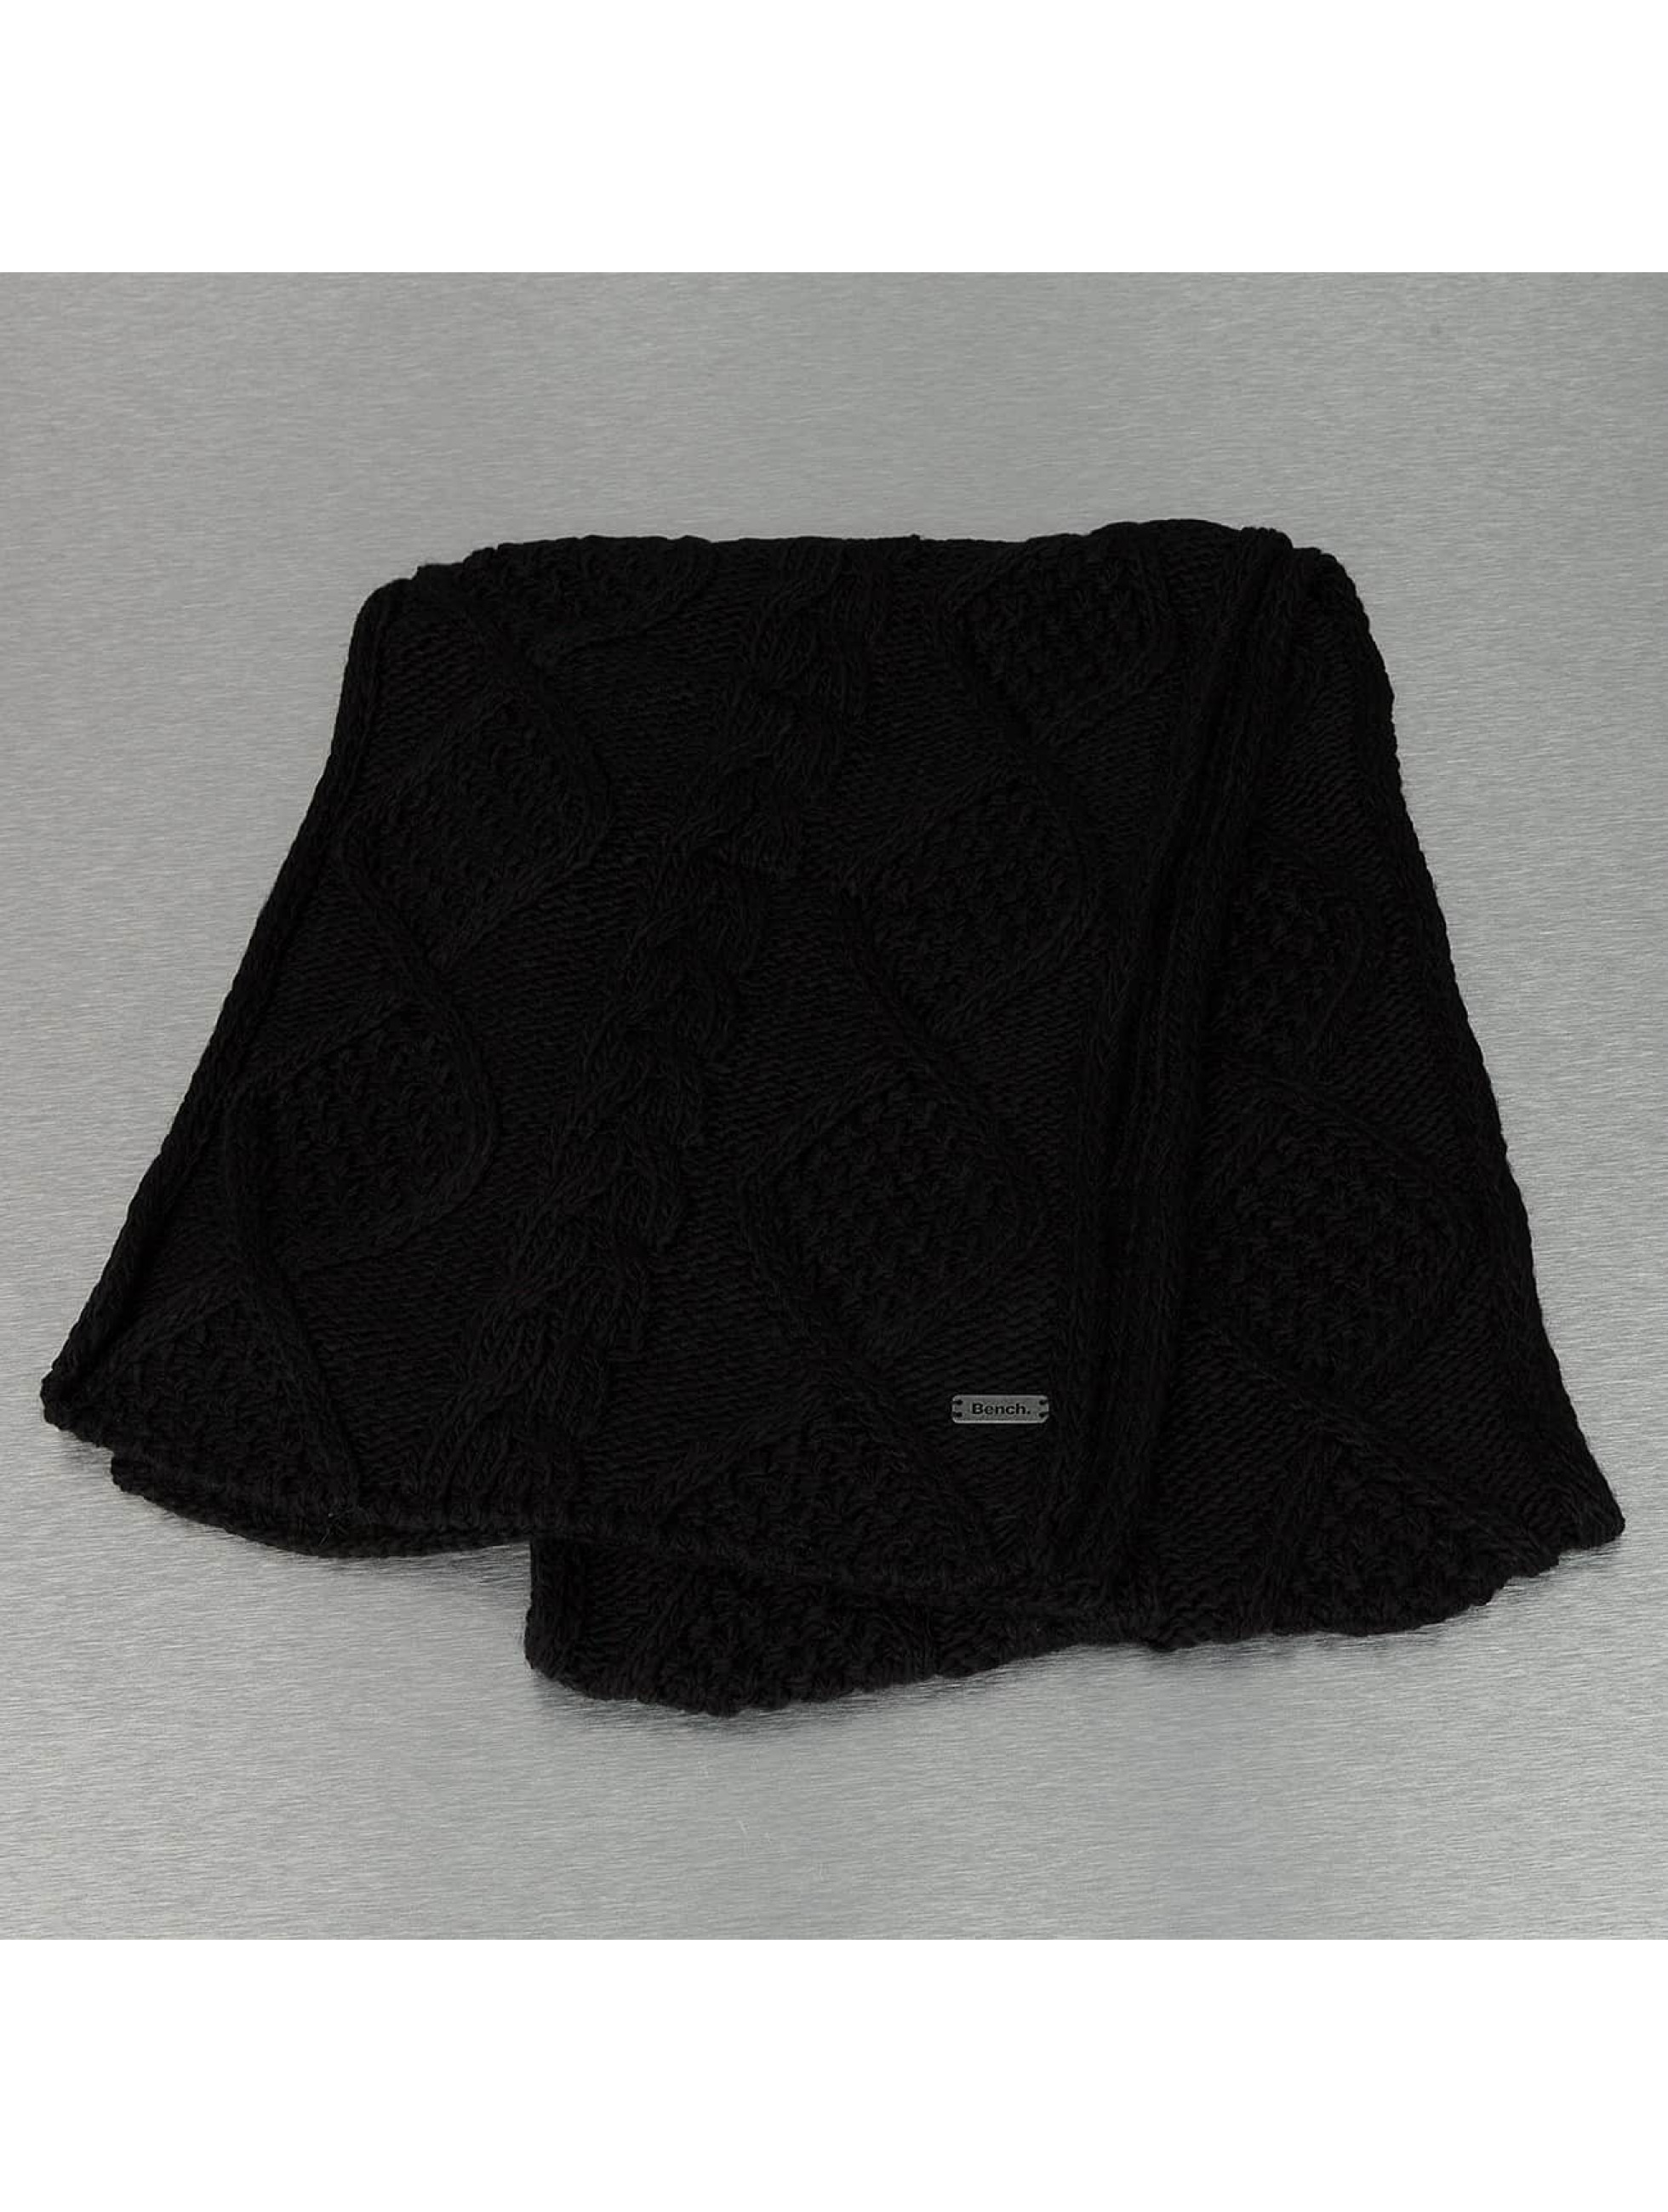 Bench Echarpe Careen Cable Knit noir